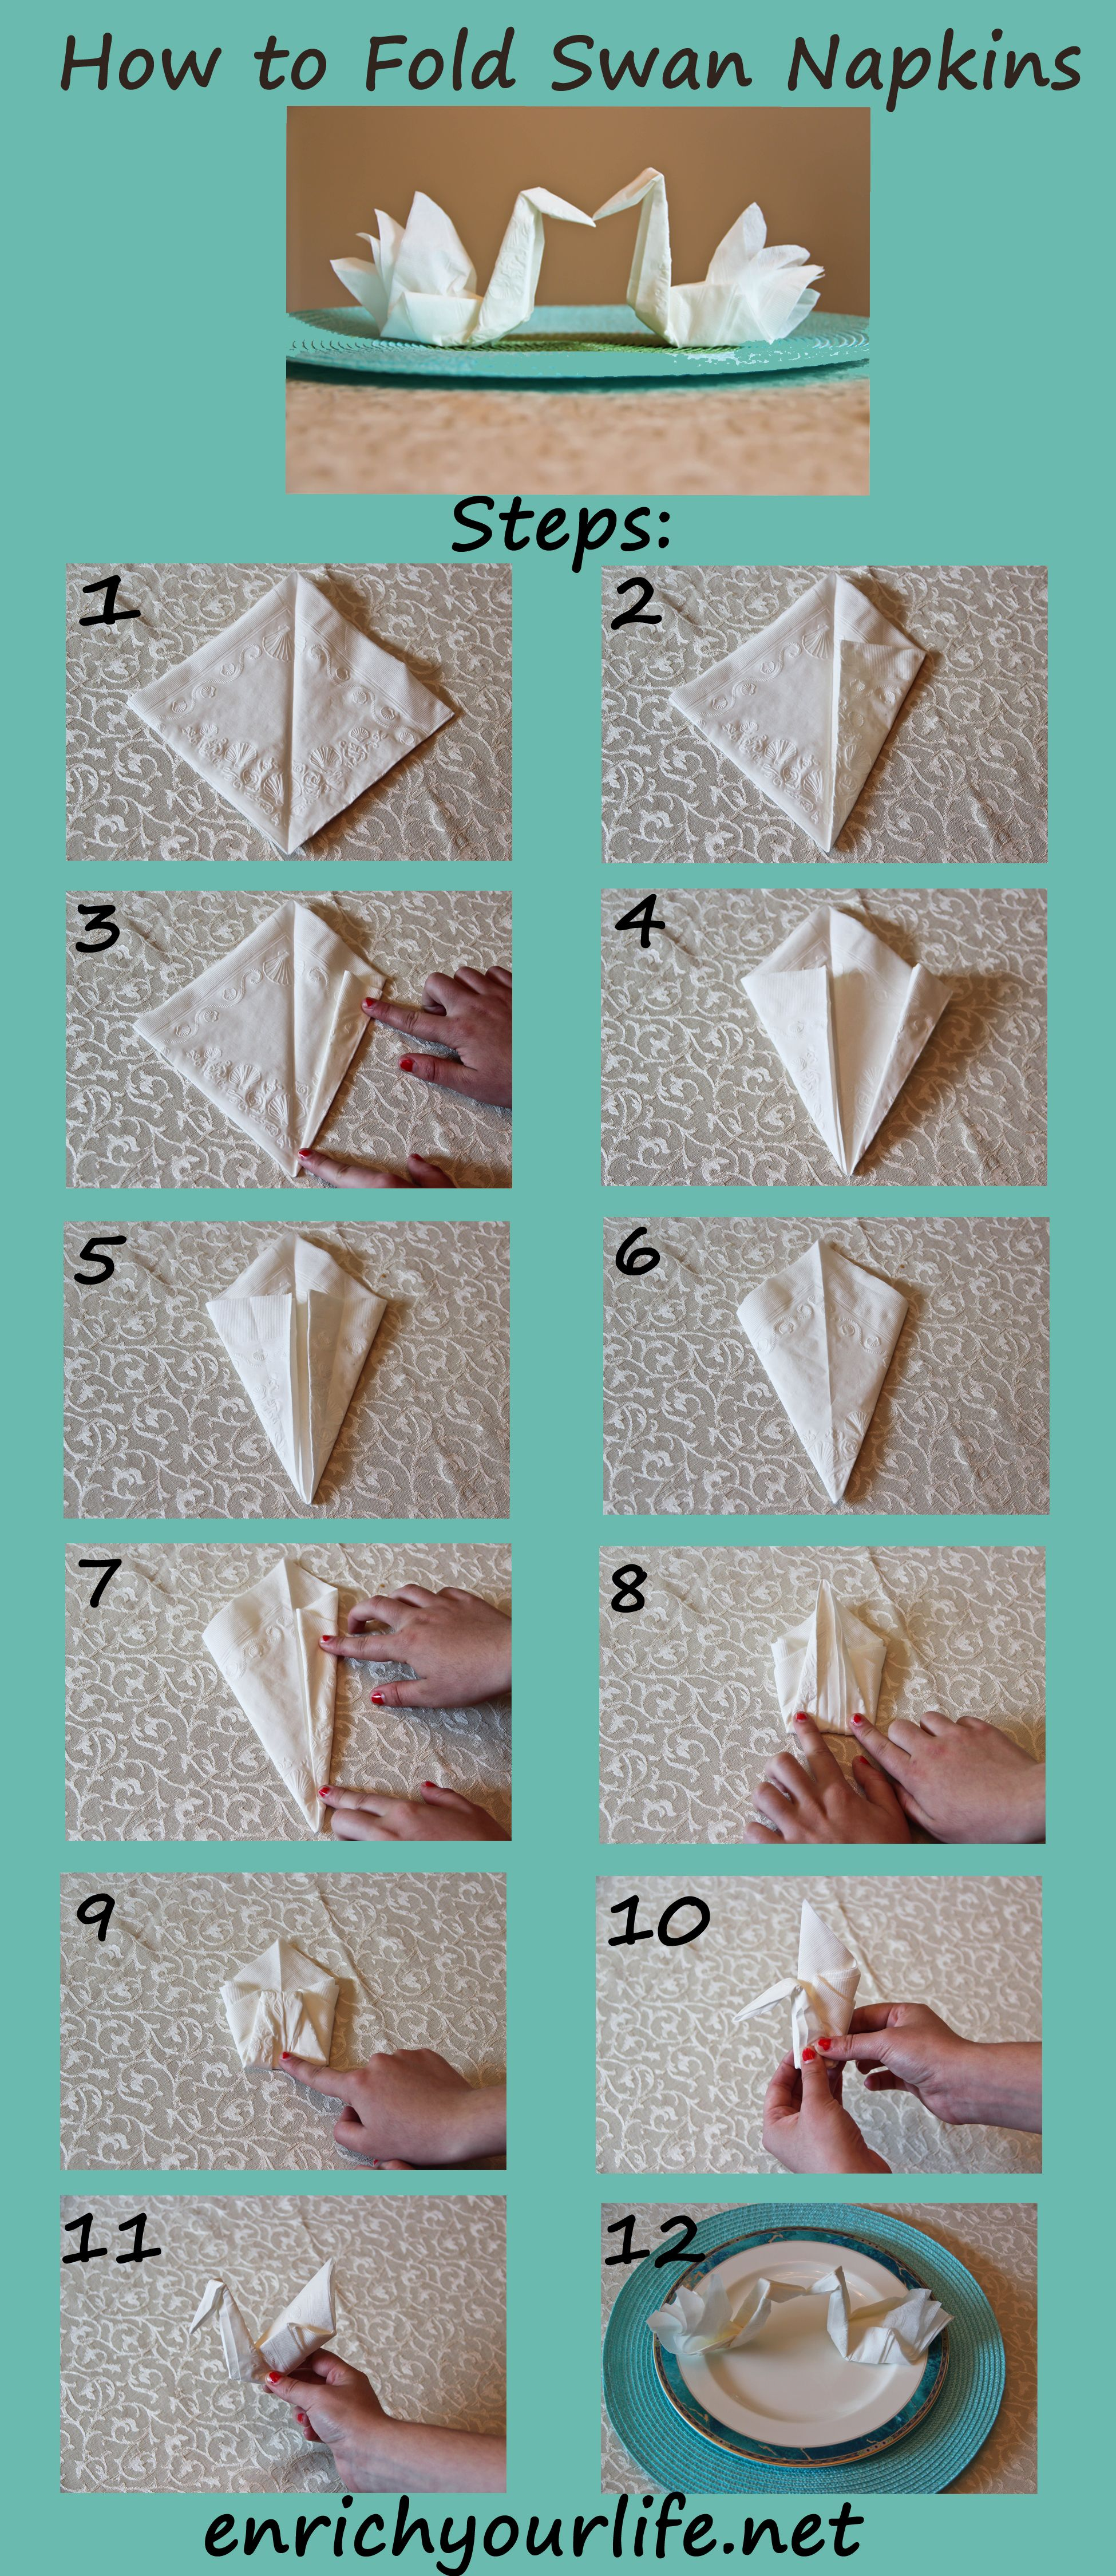 How To Fold A Swan Napkin Step By Enrichyourlife Enrichyourlife01 Gmail